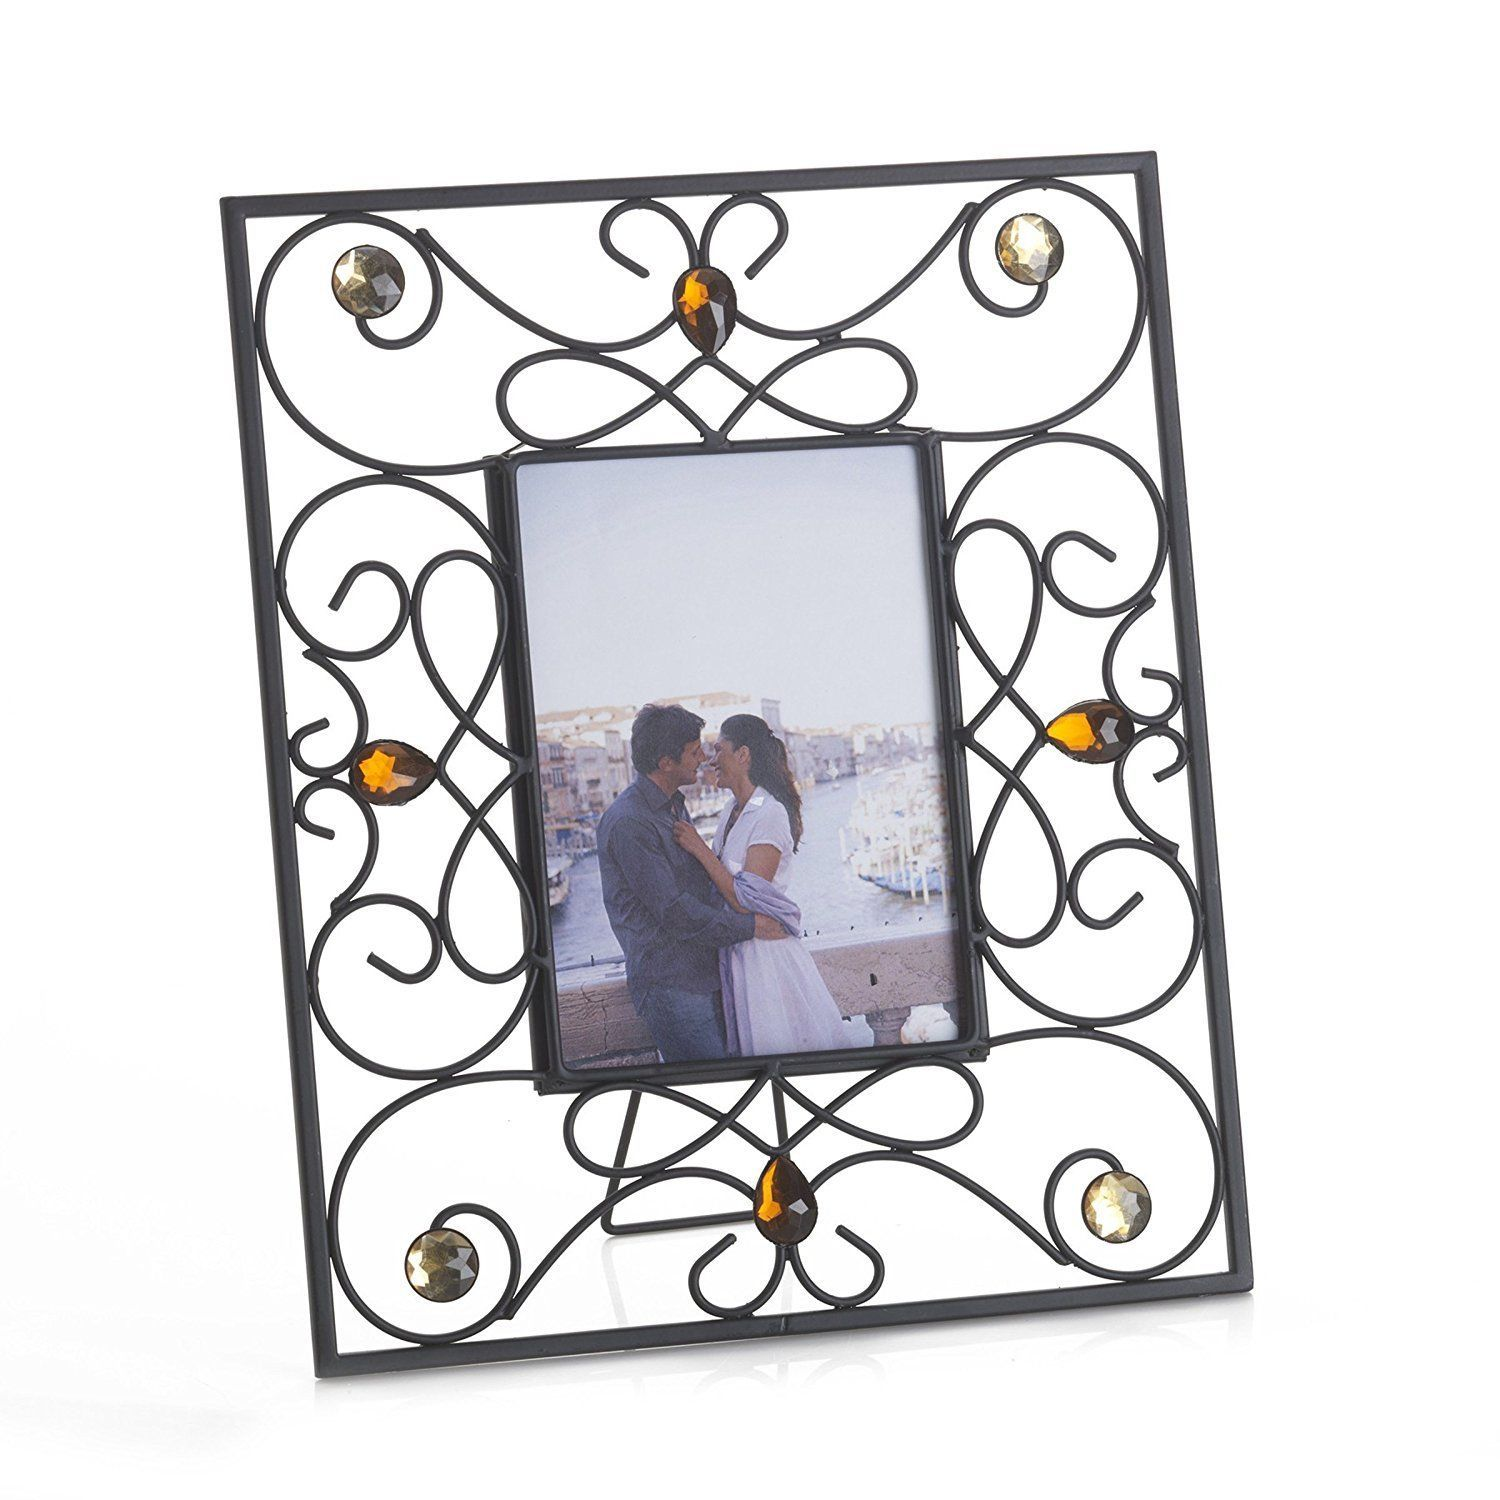 Lenox Picture Frame: 87 listings